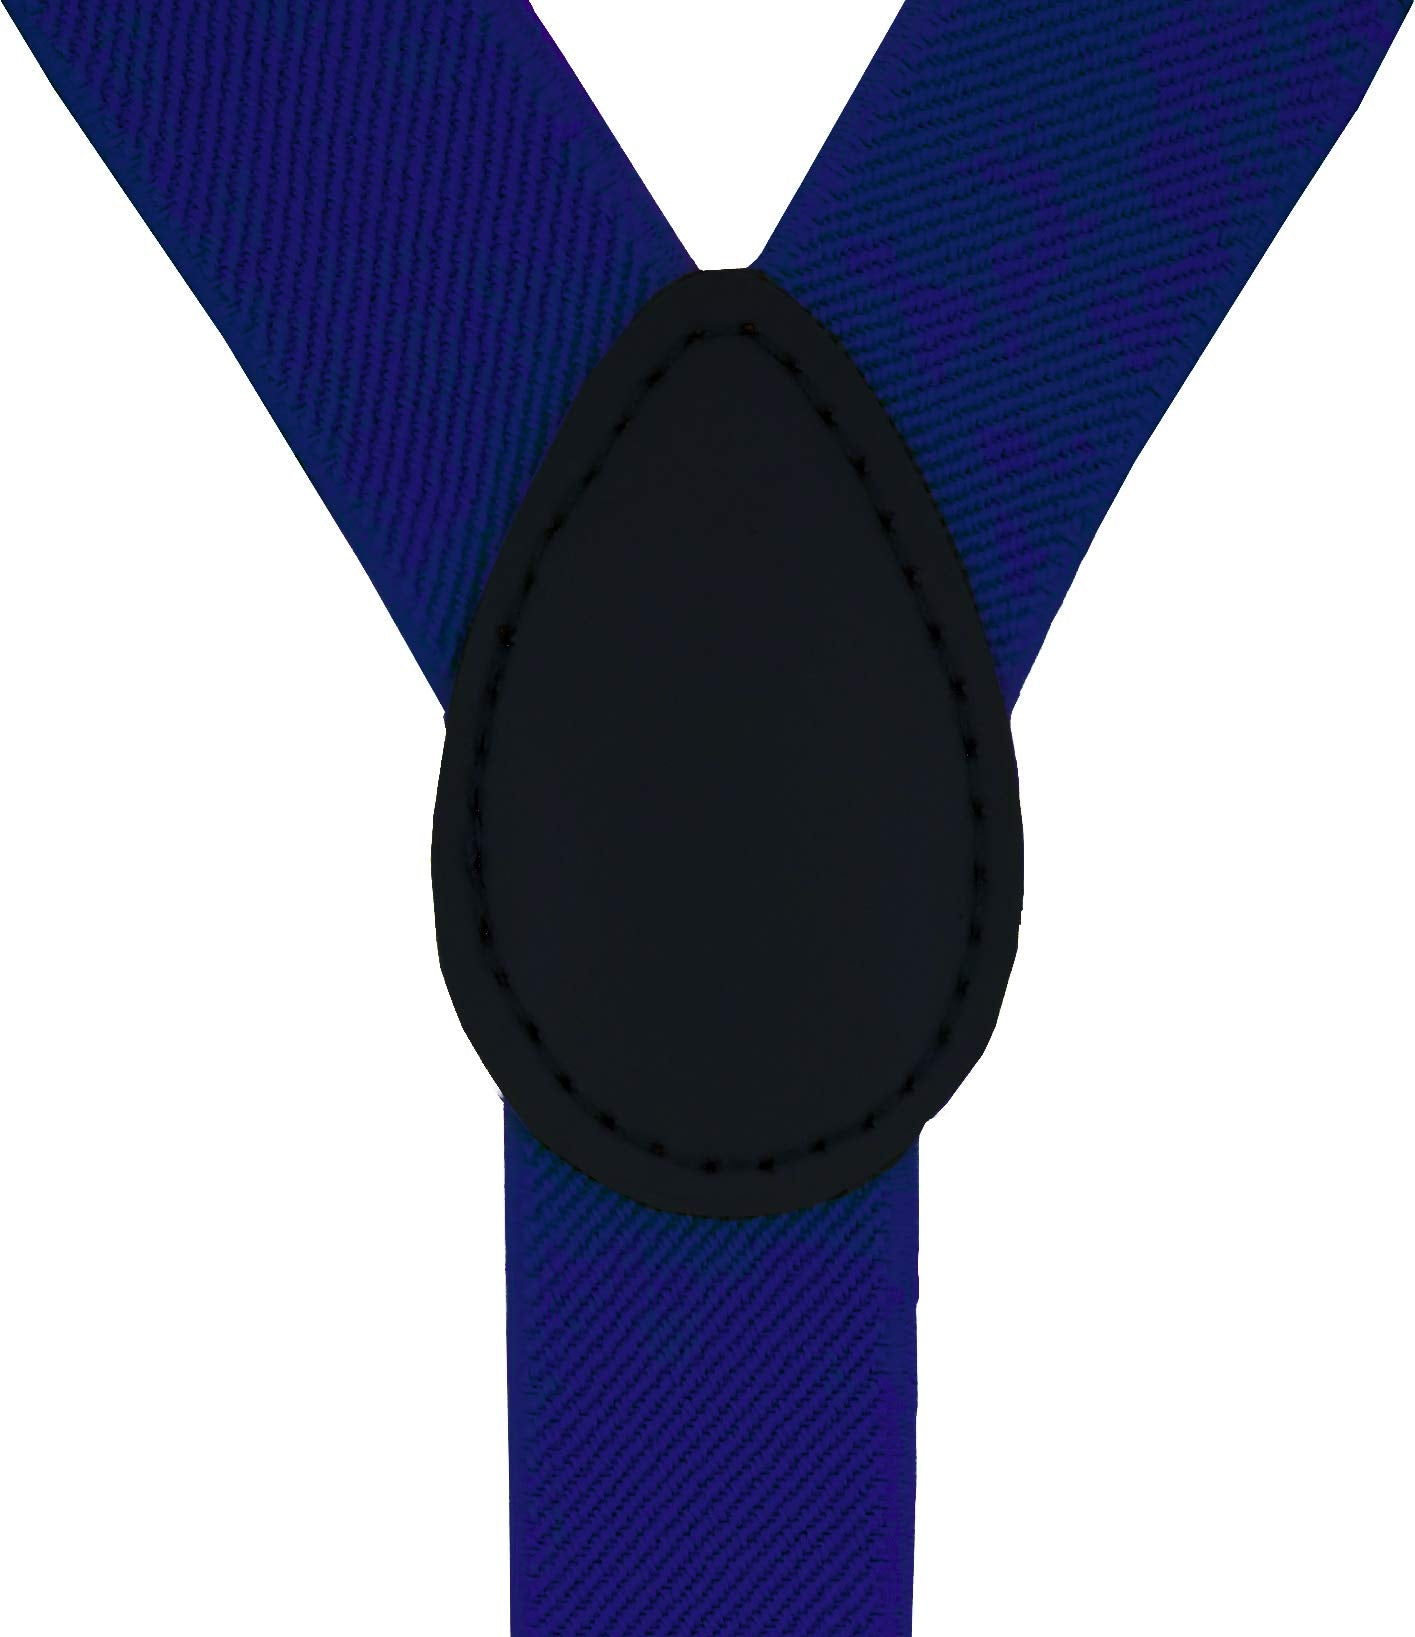 Navisima Suspender With Bowtie for Kids Elastic Y-Back Design with Strong Metal Clips Royal Blue